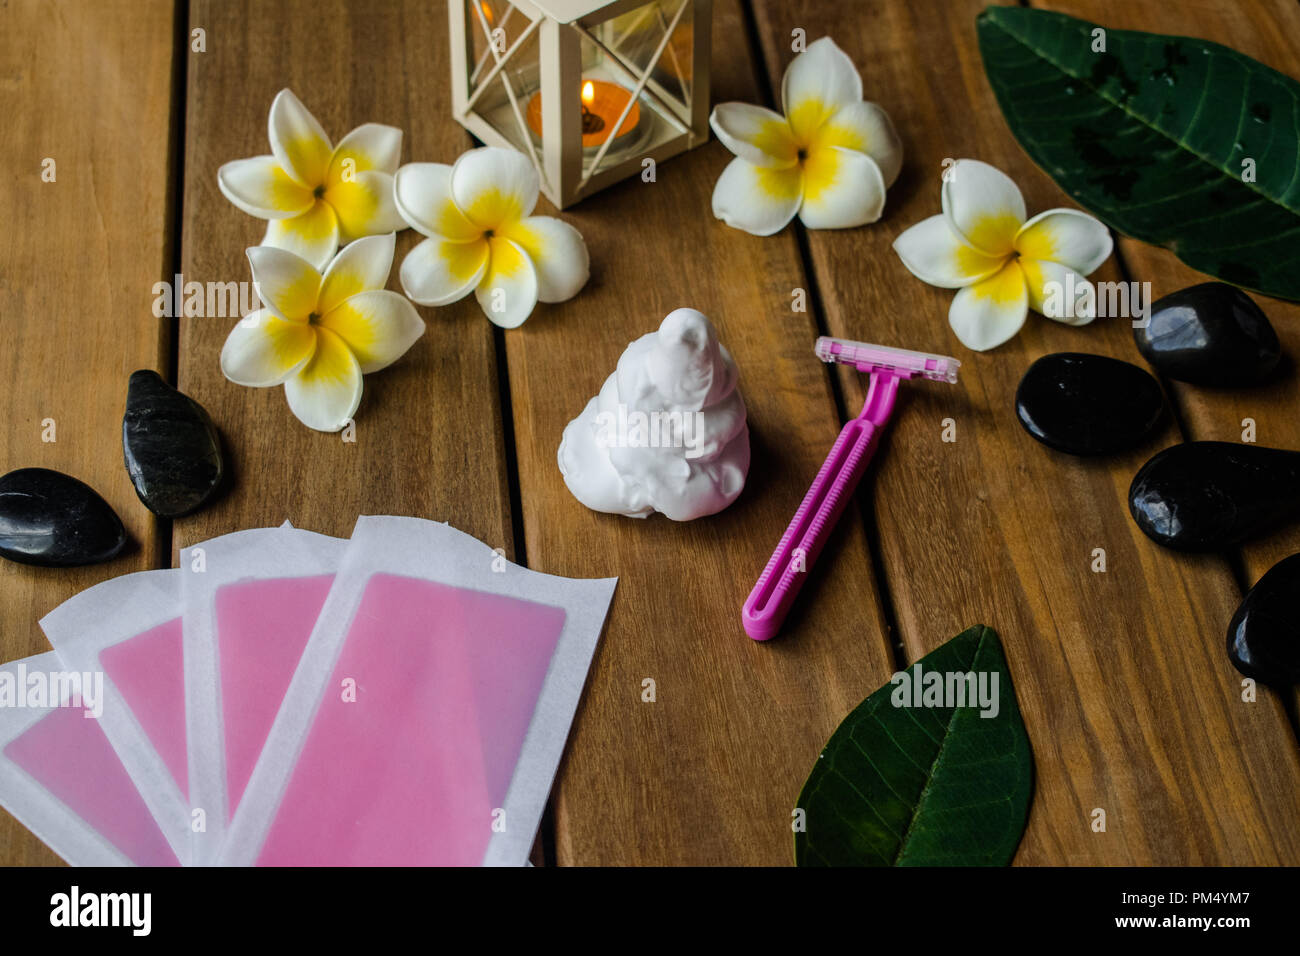 Pink cold wax strips with pink razor blade on wooden surface with plumeria flowers and black round stones - Stock Image